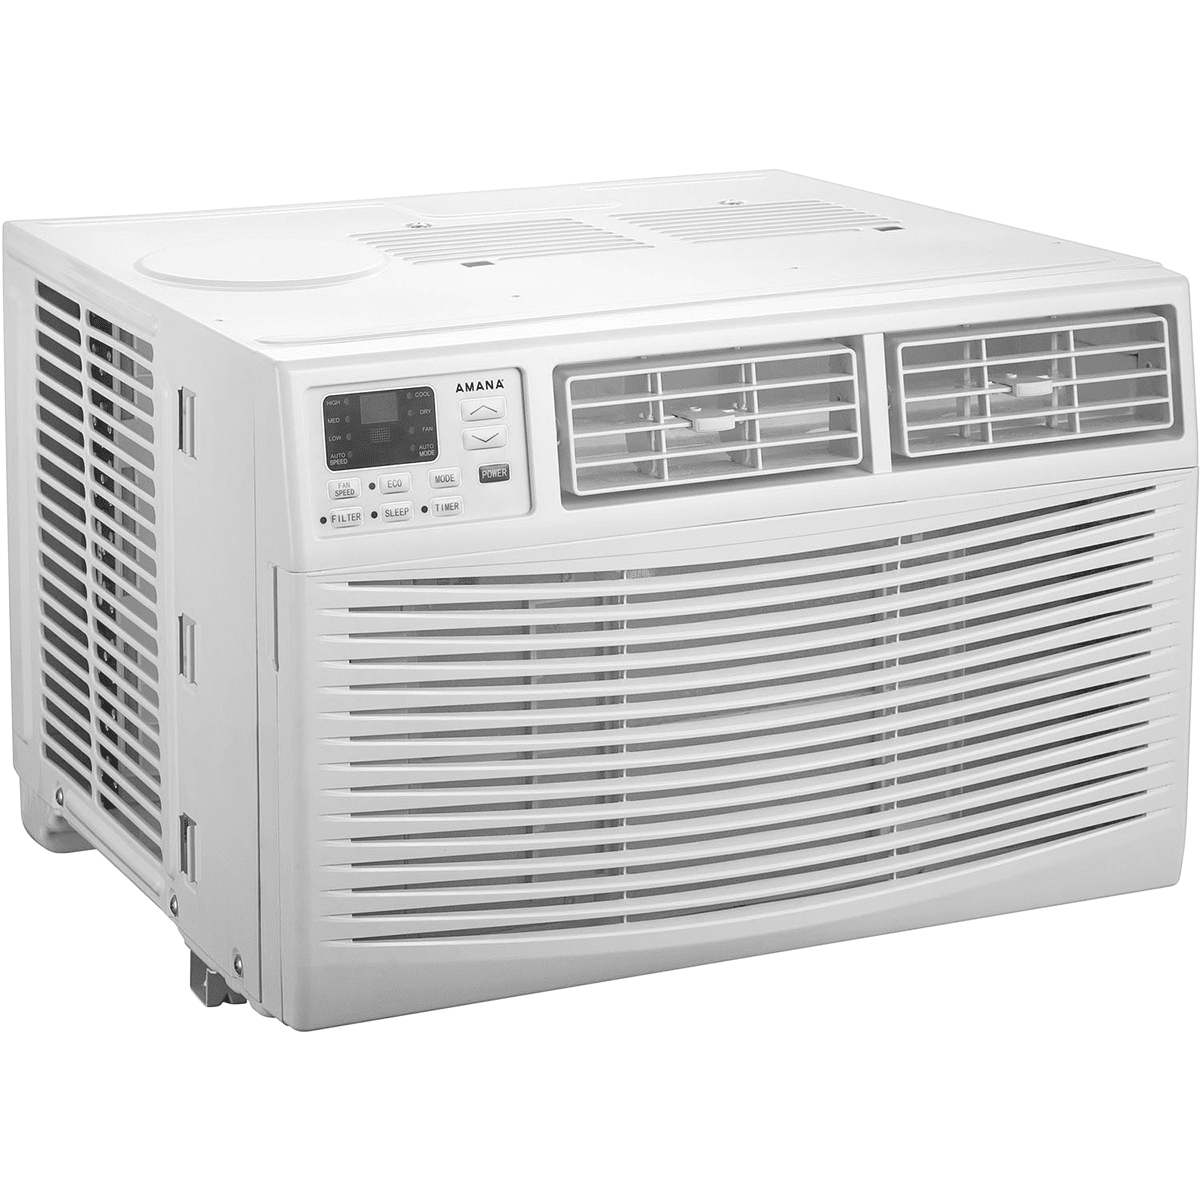 Amana 6,000 Btu Window Air Conditioner With Electronic Controls - Amap061bw